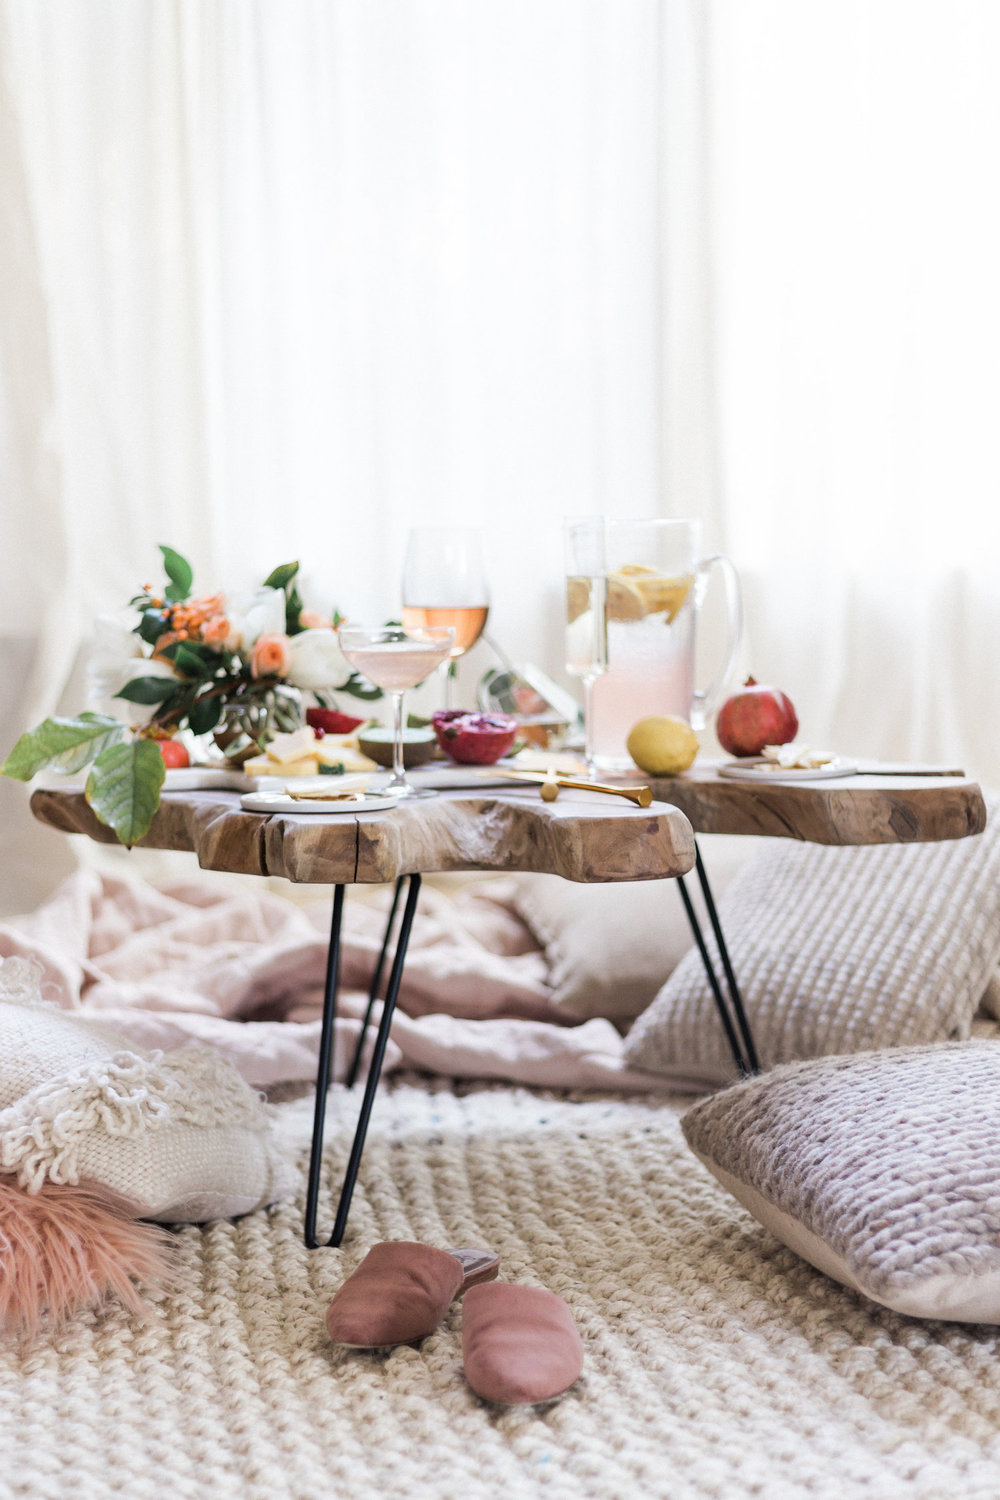 Living room coffee table picnic | A Fabulous Fete